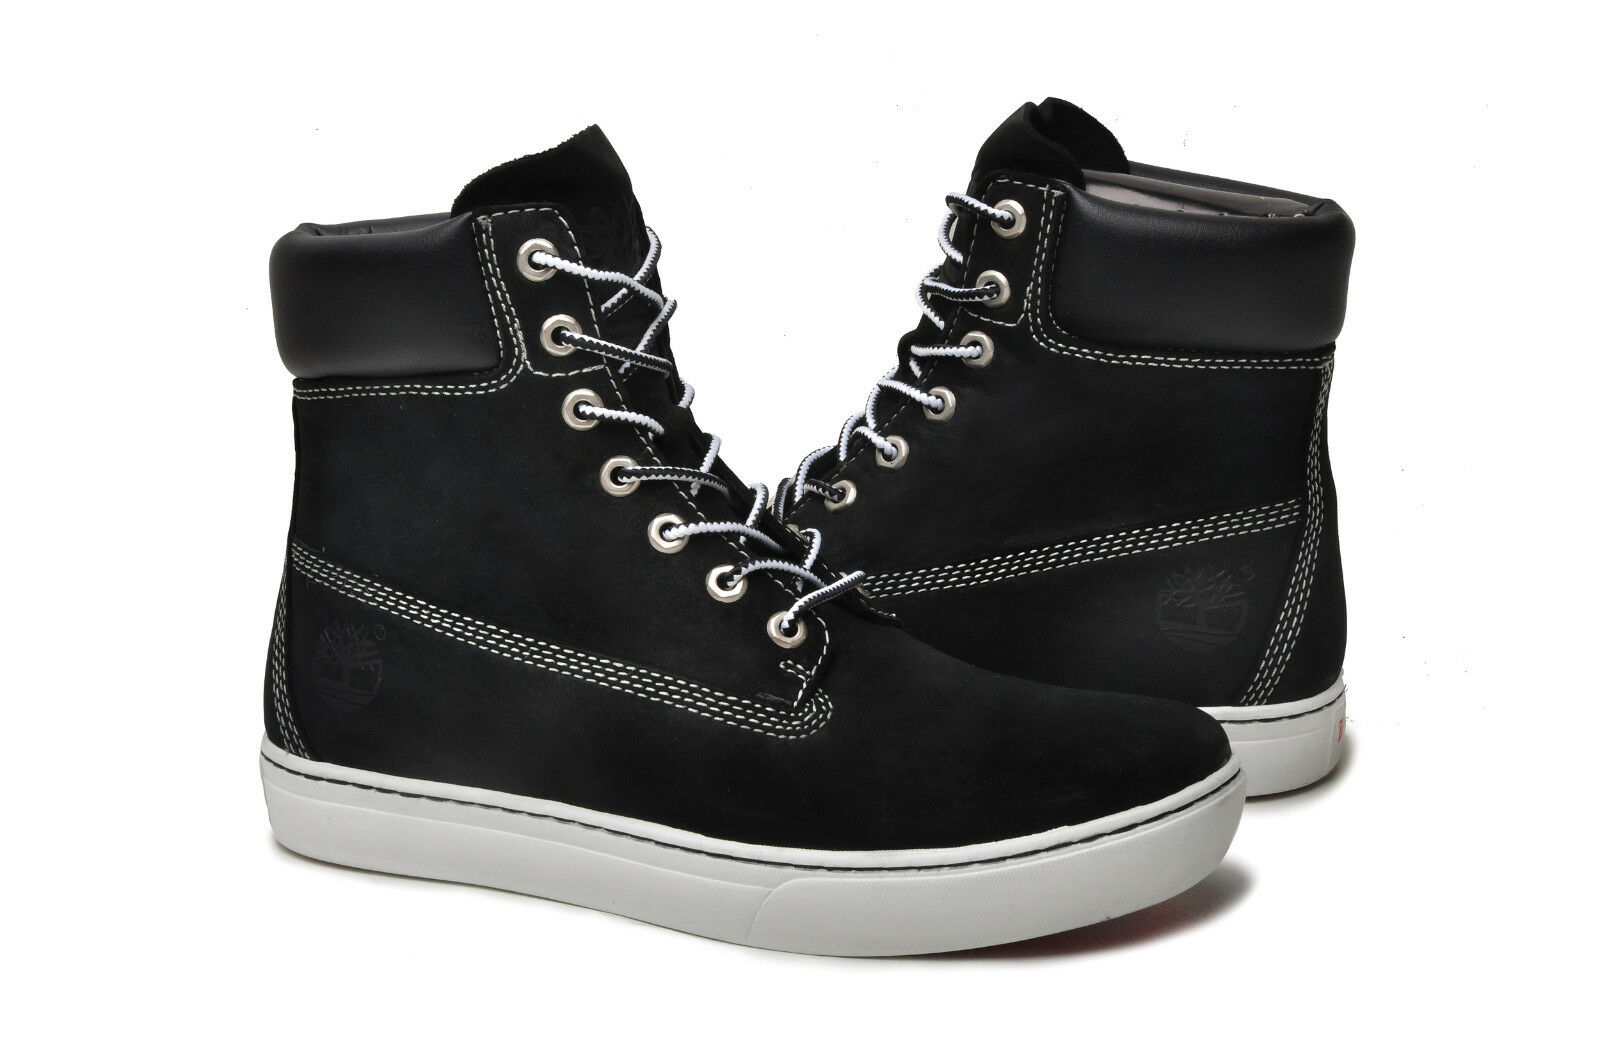 timberland s boot 6 inch premium 6609a grey black